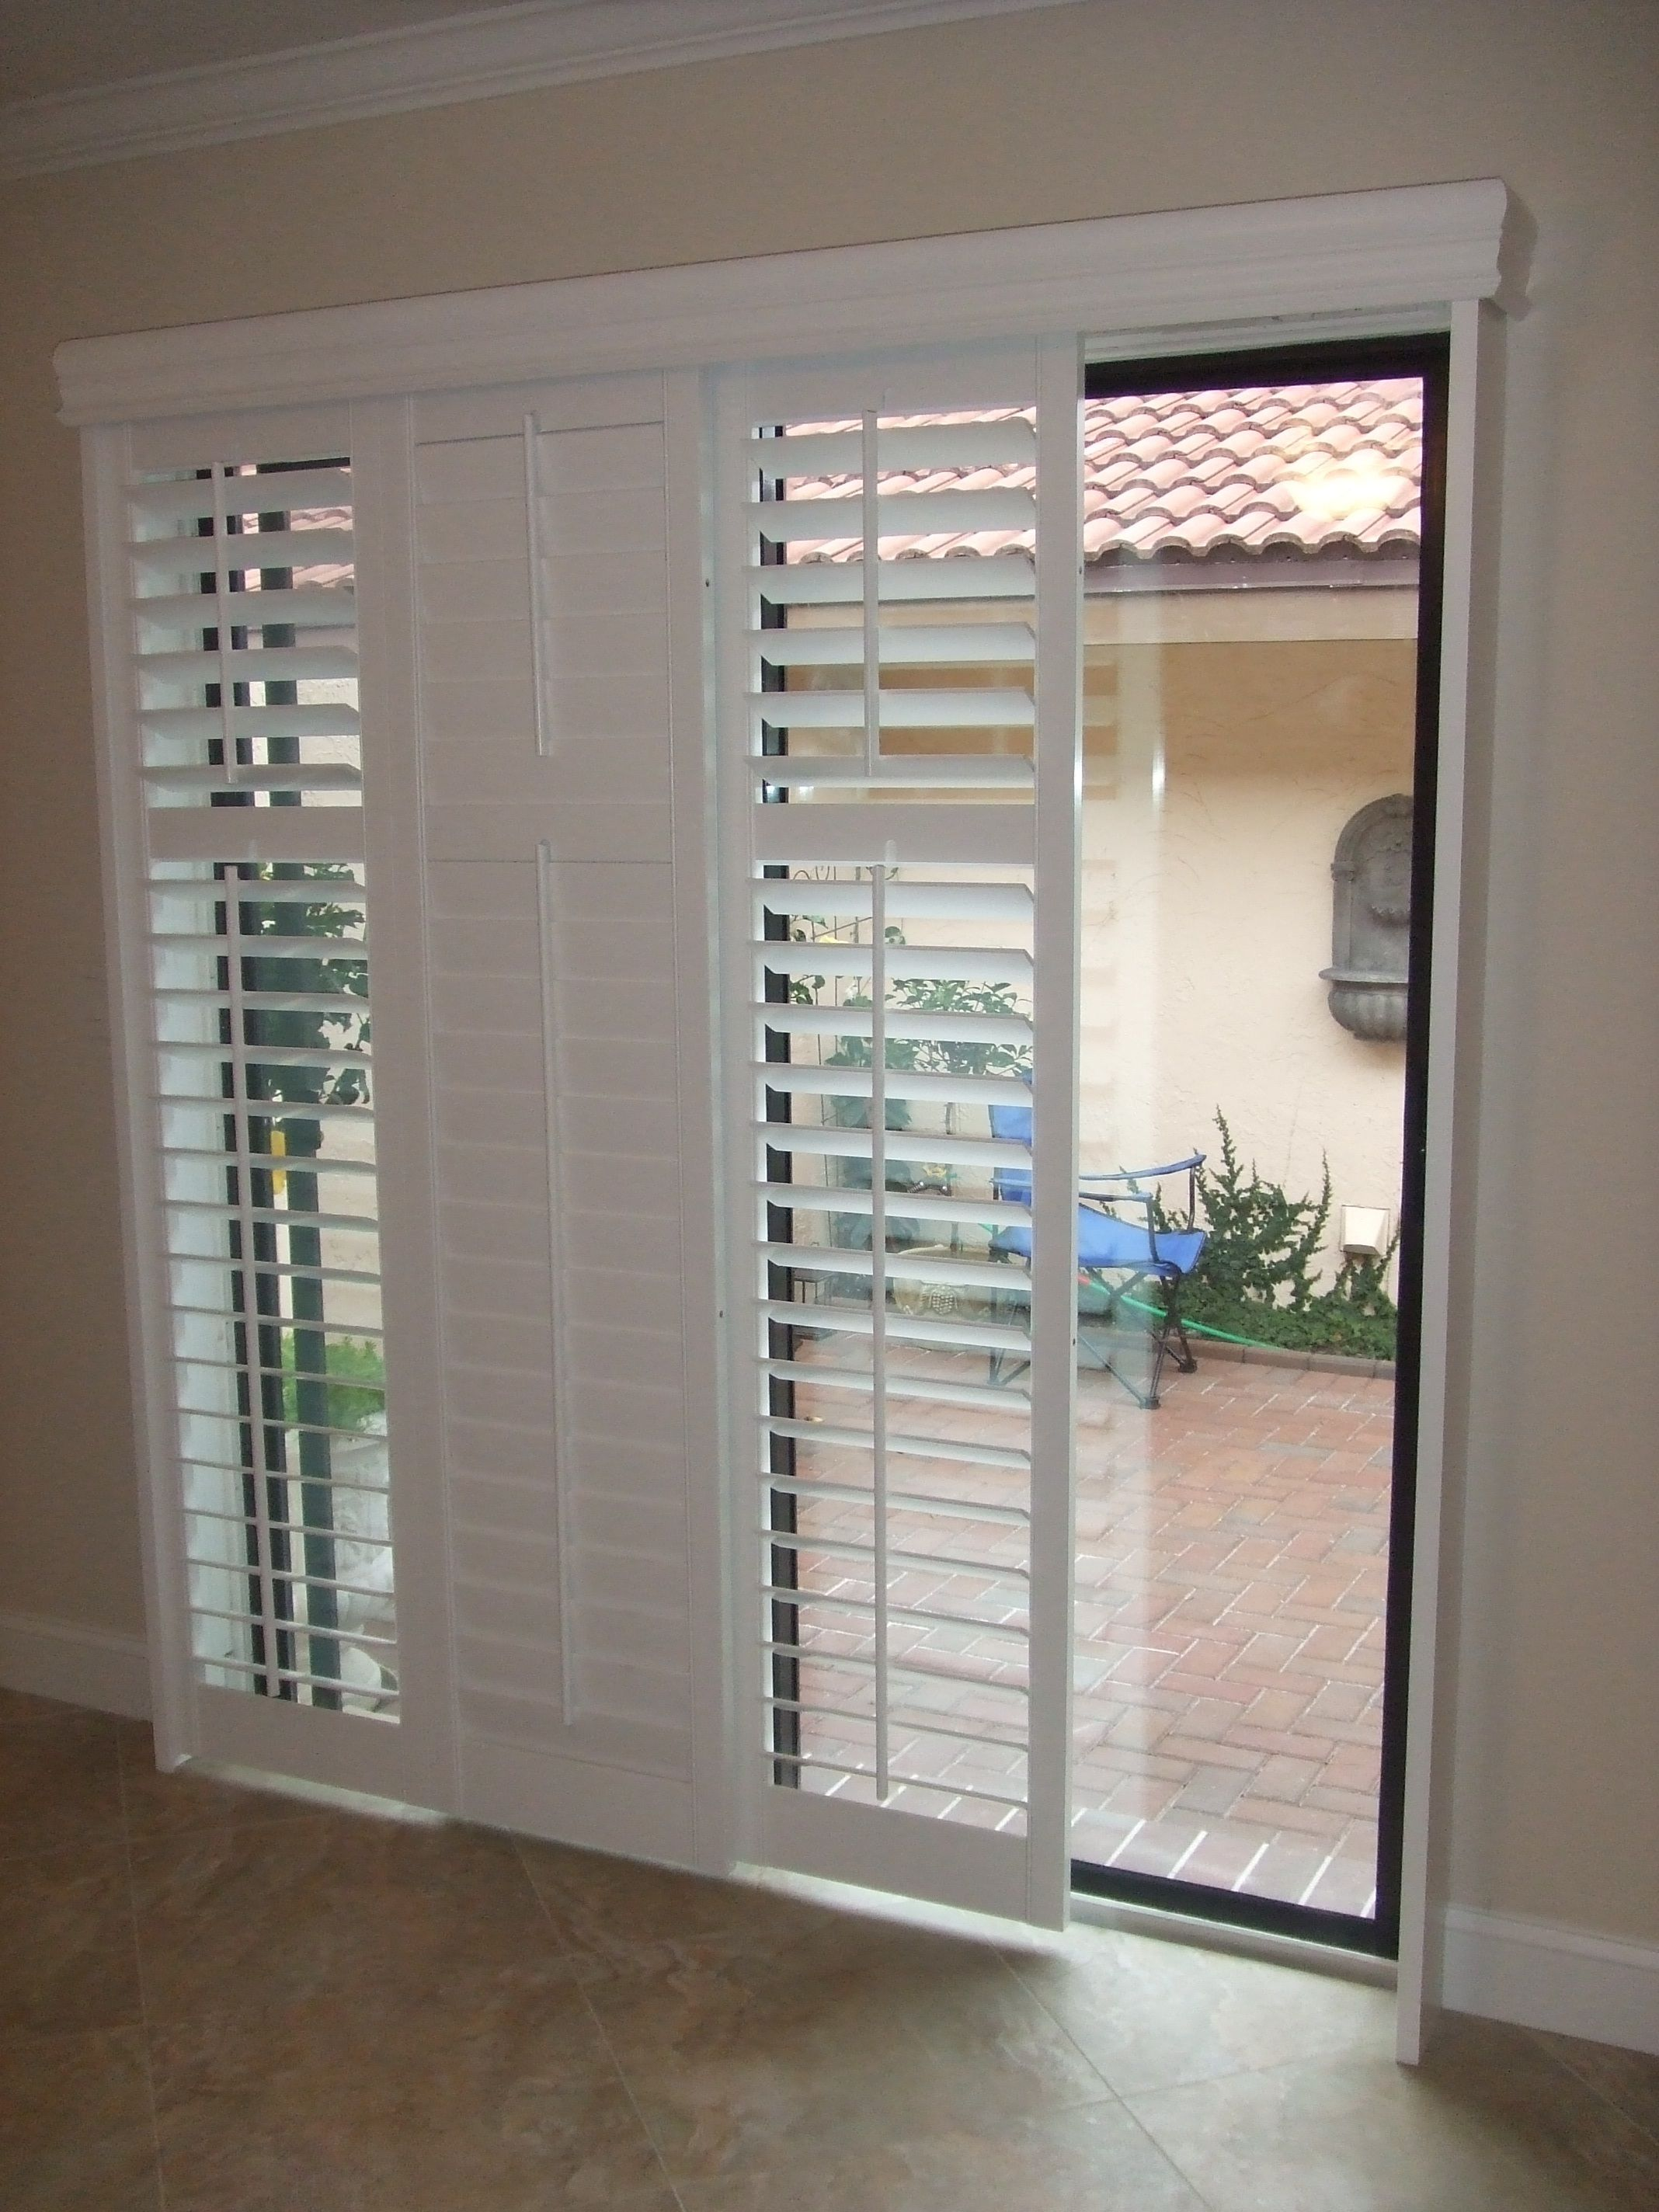 Sliding Shutters For Glass Patio Doors Exclusively At The Home